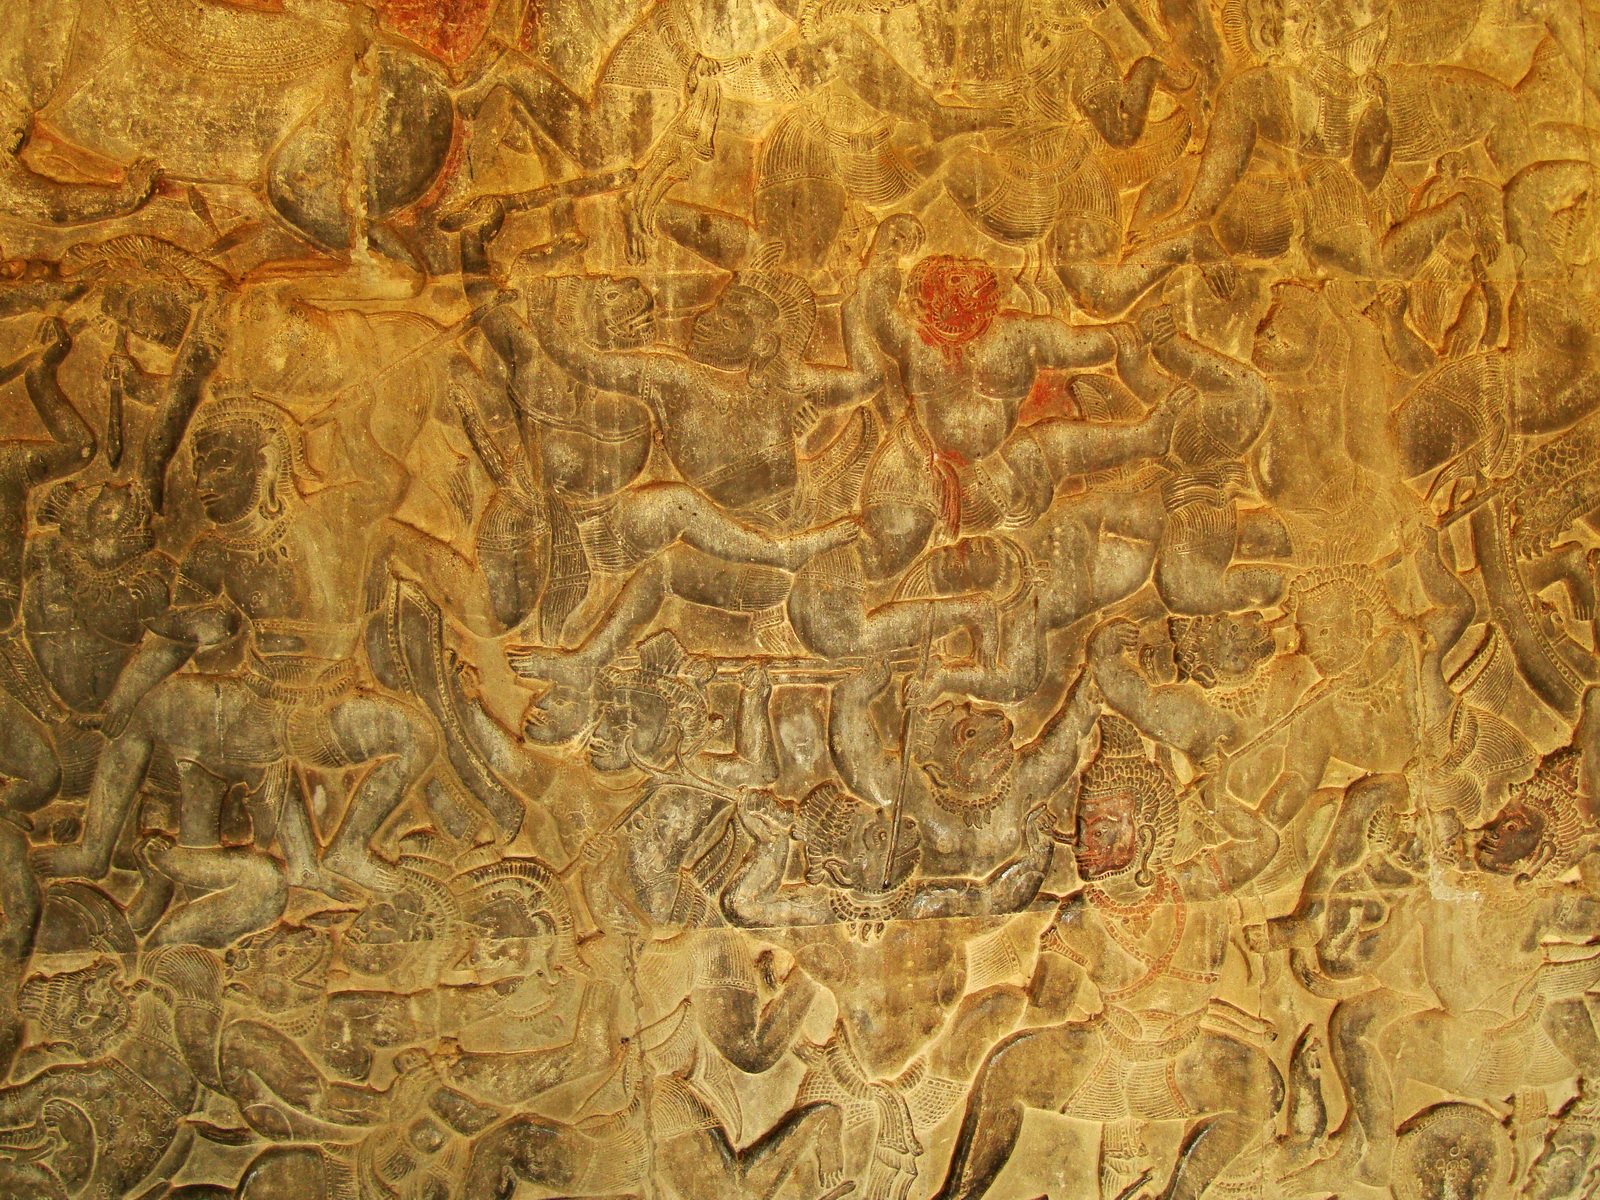 Angkor Wat Bas relief W Gallery N Wing Battle of Lanka 61